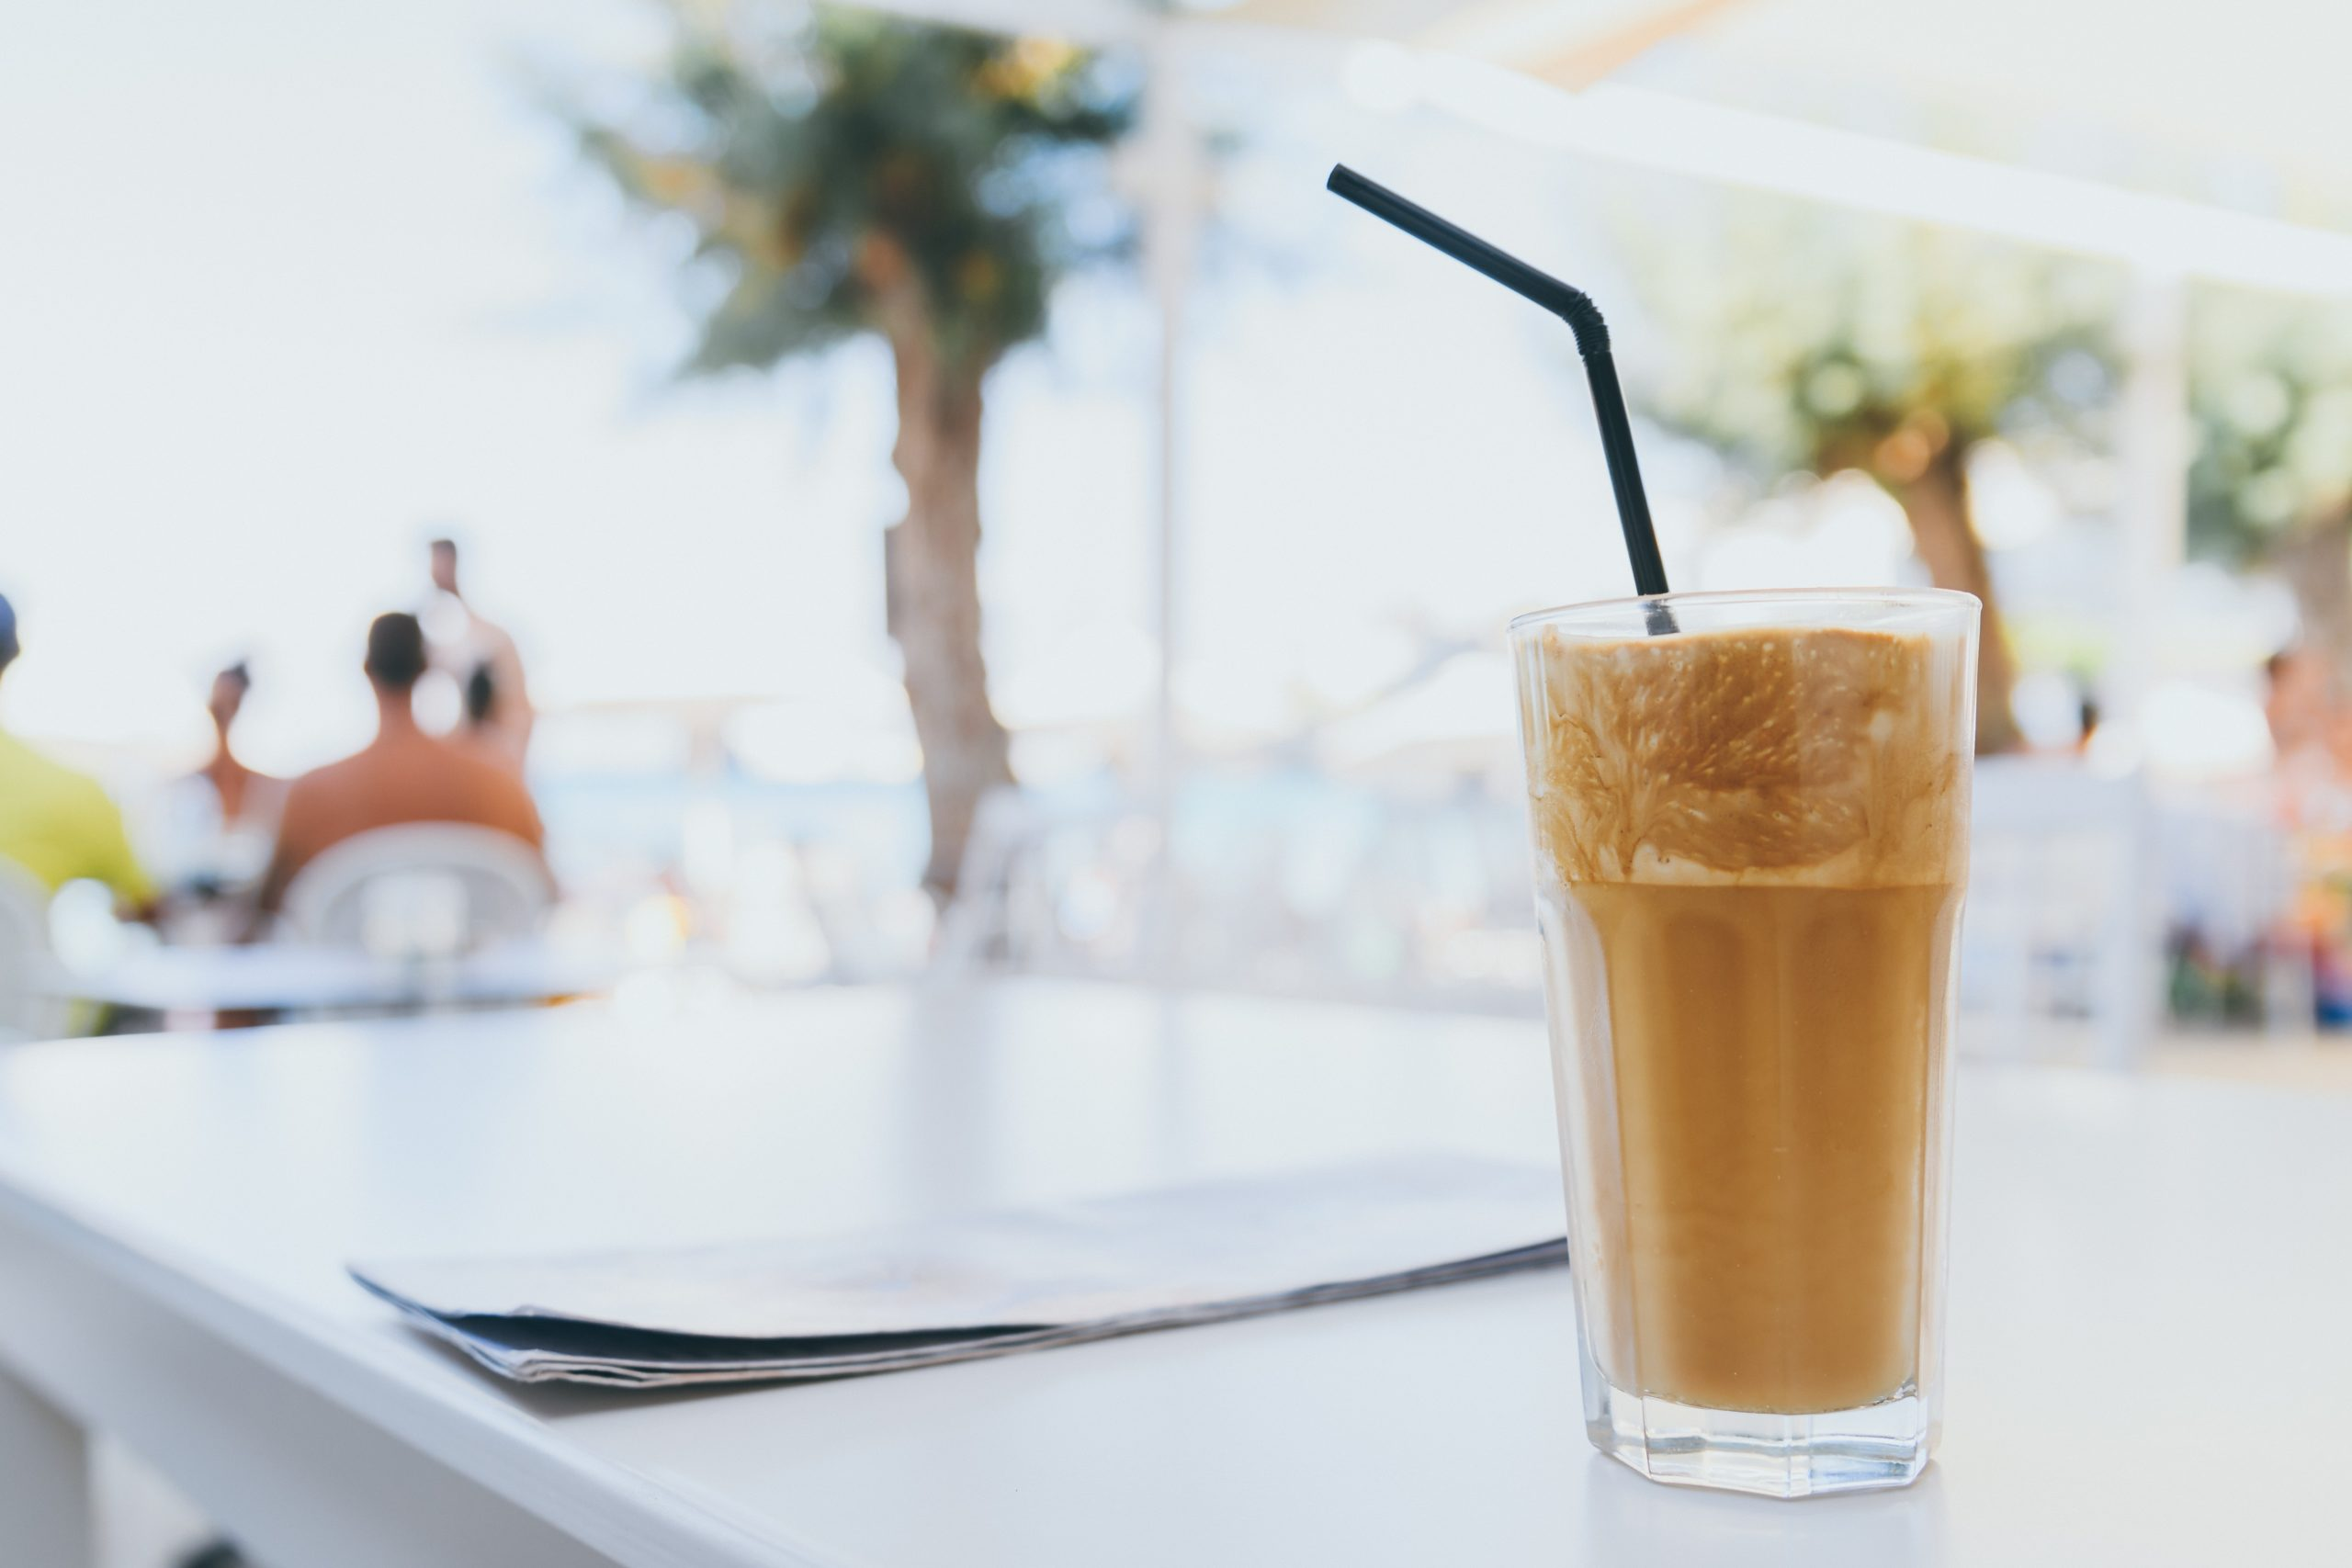 a glass of latte served at a cafe